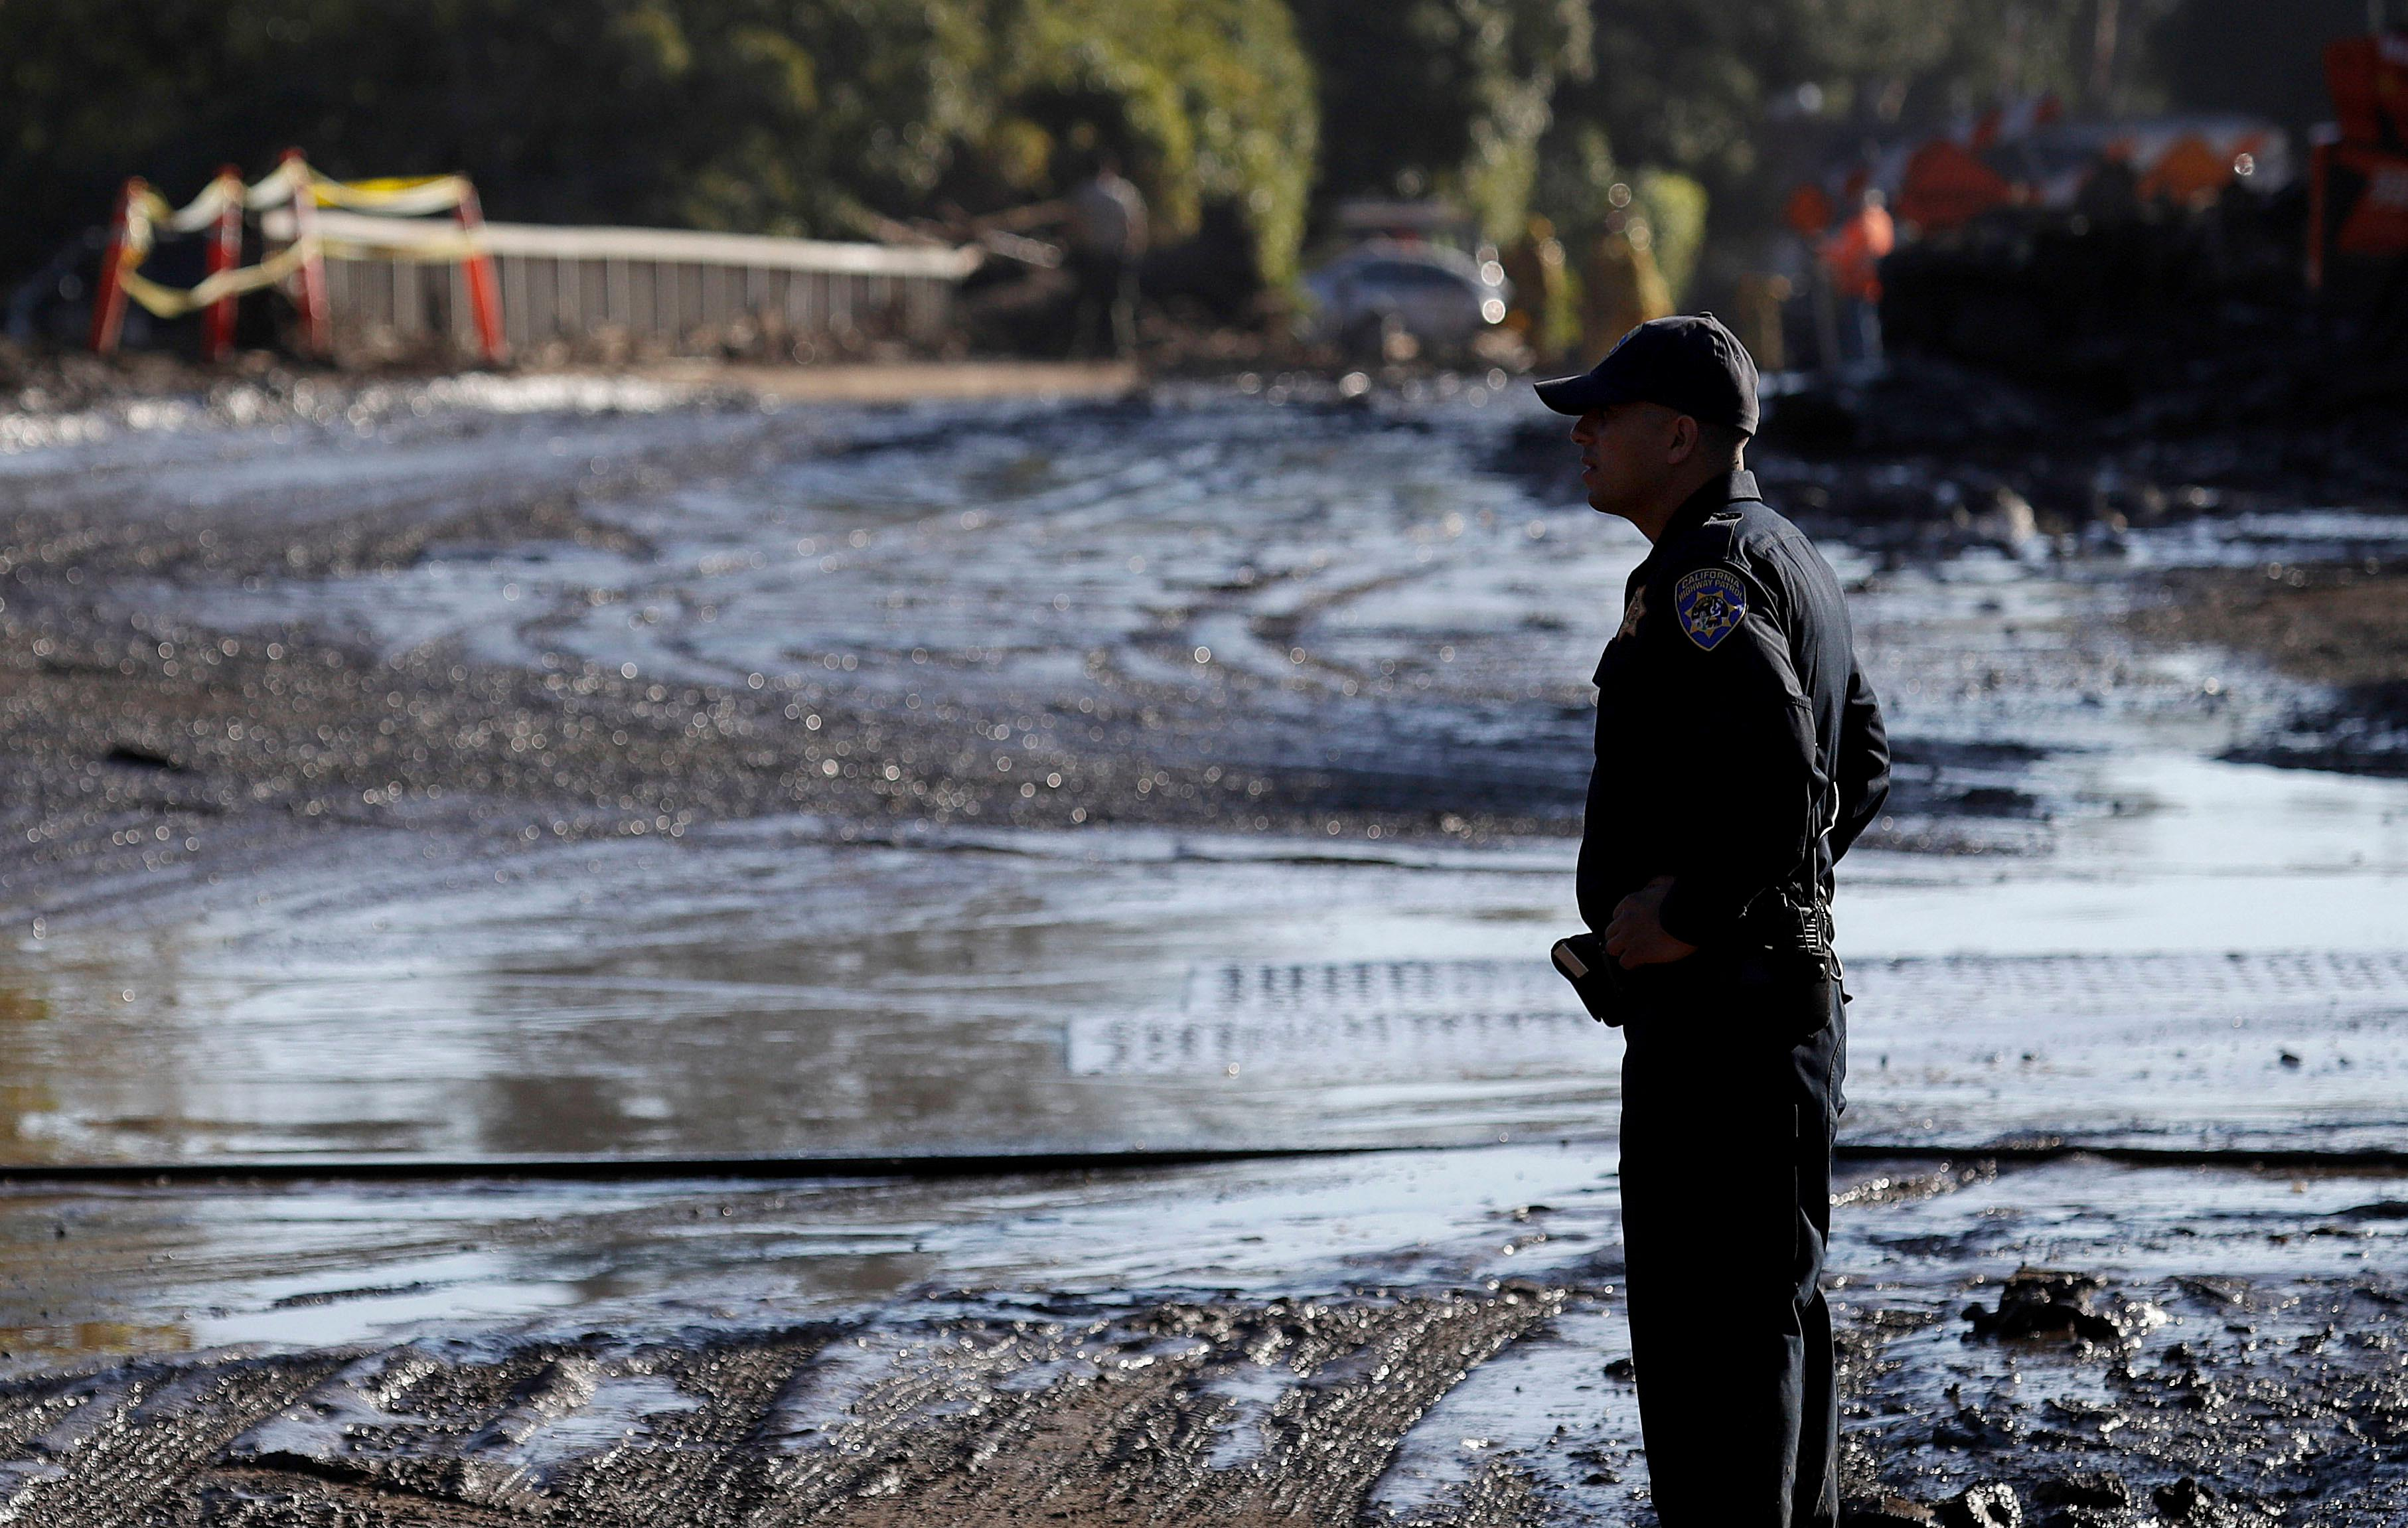 A California Highway Patrol officer stands in front of a road damaged from storms in Montecito, Calif., Thursday, Jan. 11, 2018. Rescue workers slogged through knee-deep ooze and used long poles to probe for bodies Thursday as the search dragged on for victims of the mudslides that slammed this wealthy coastal town. (AP Photo/Marcio Jose Sanchez)